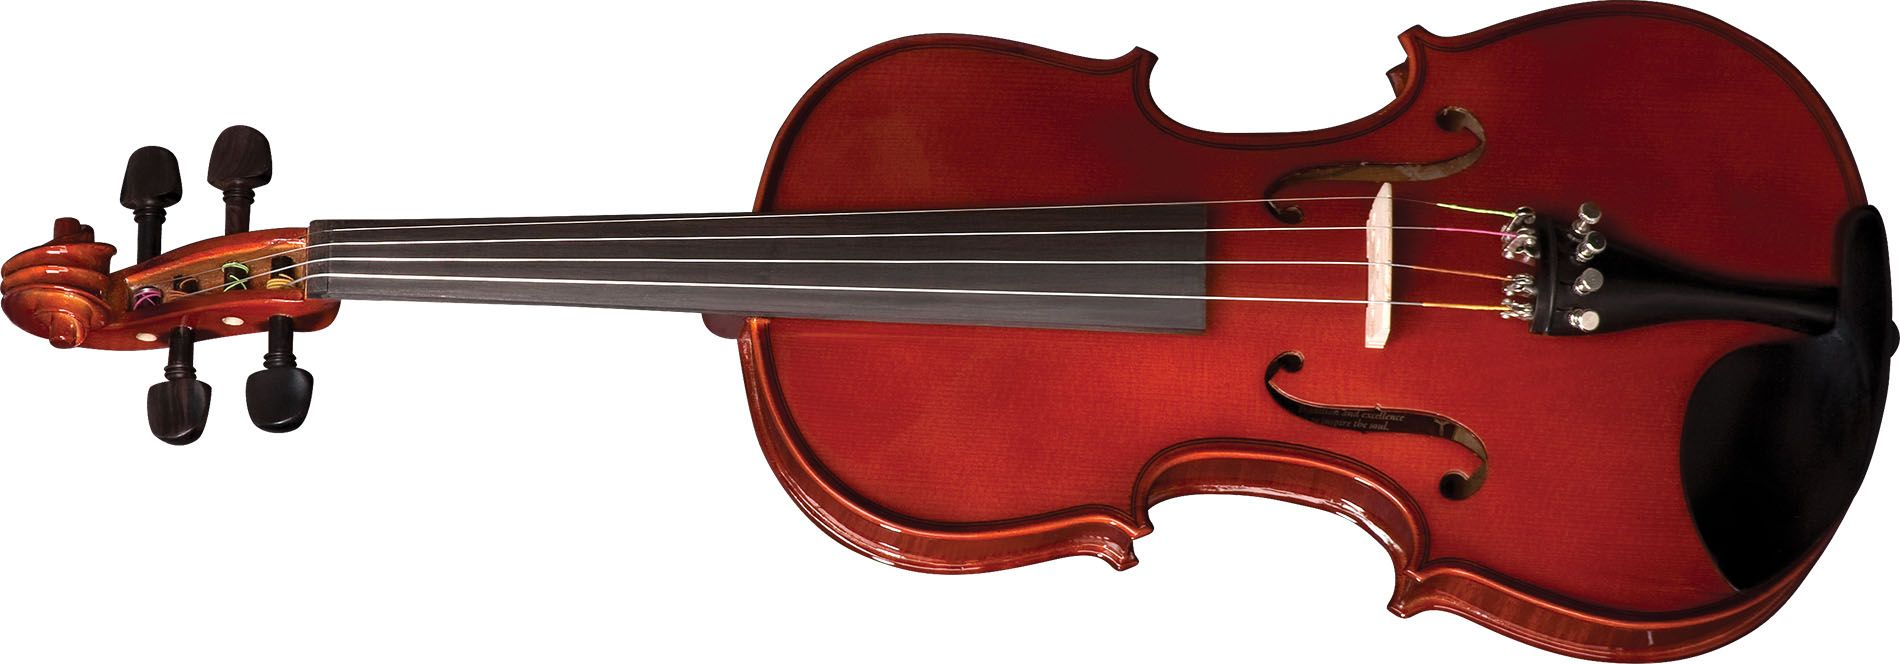 Violino Eagle VE144 4/4 Rajado